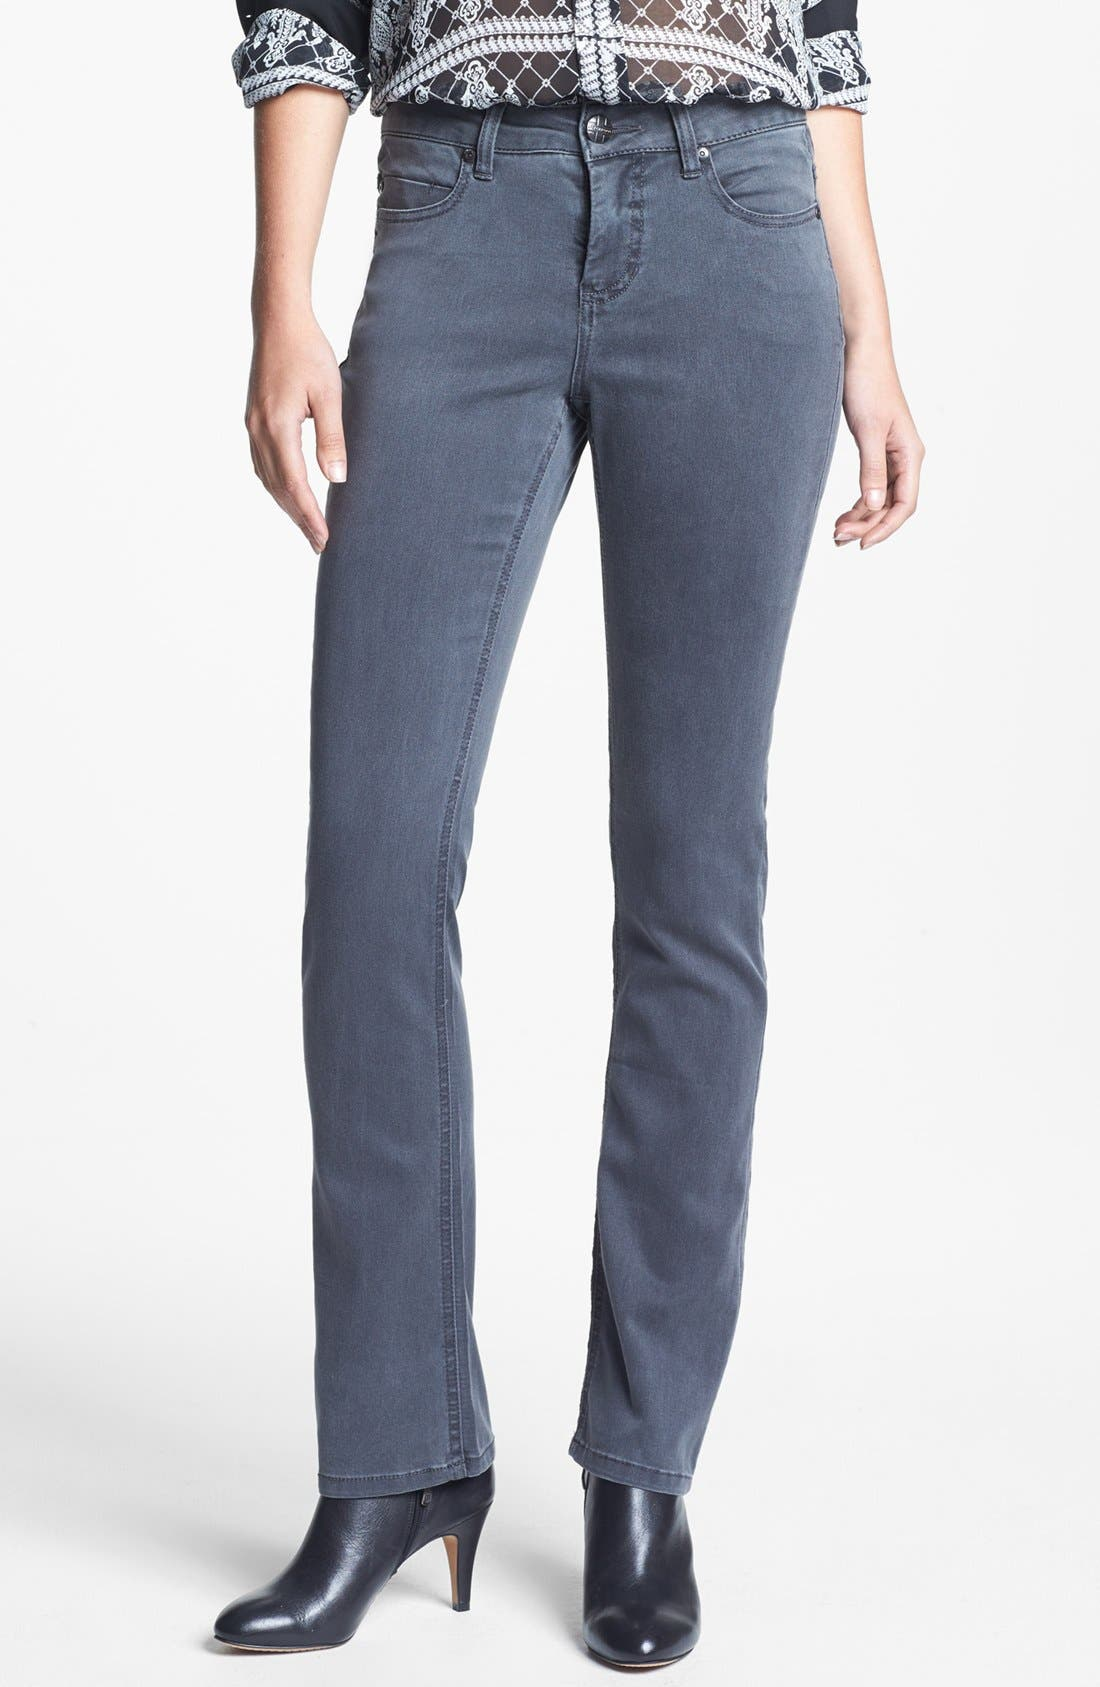 Main Image - Liverpool Jeans Company 'Sadie' Straight Leg Supersoft Stretch Jeans (Regular & Petite)